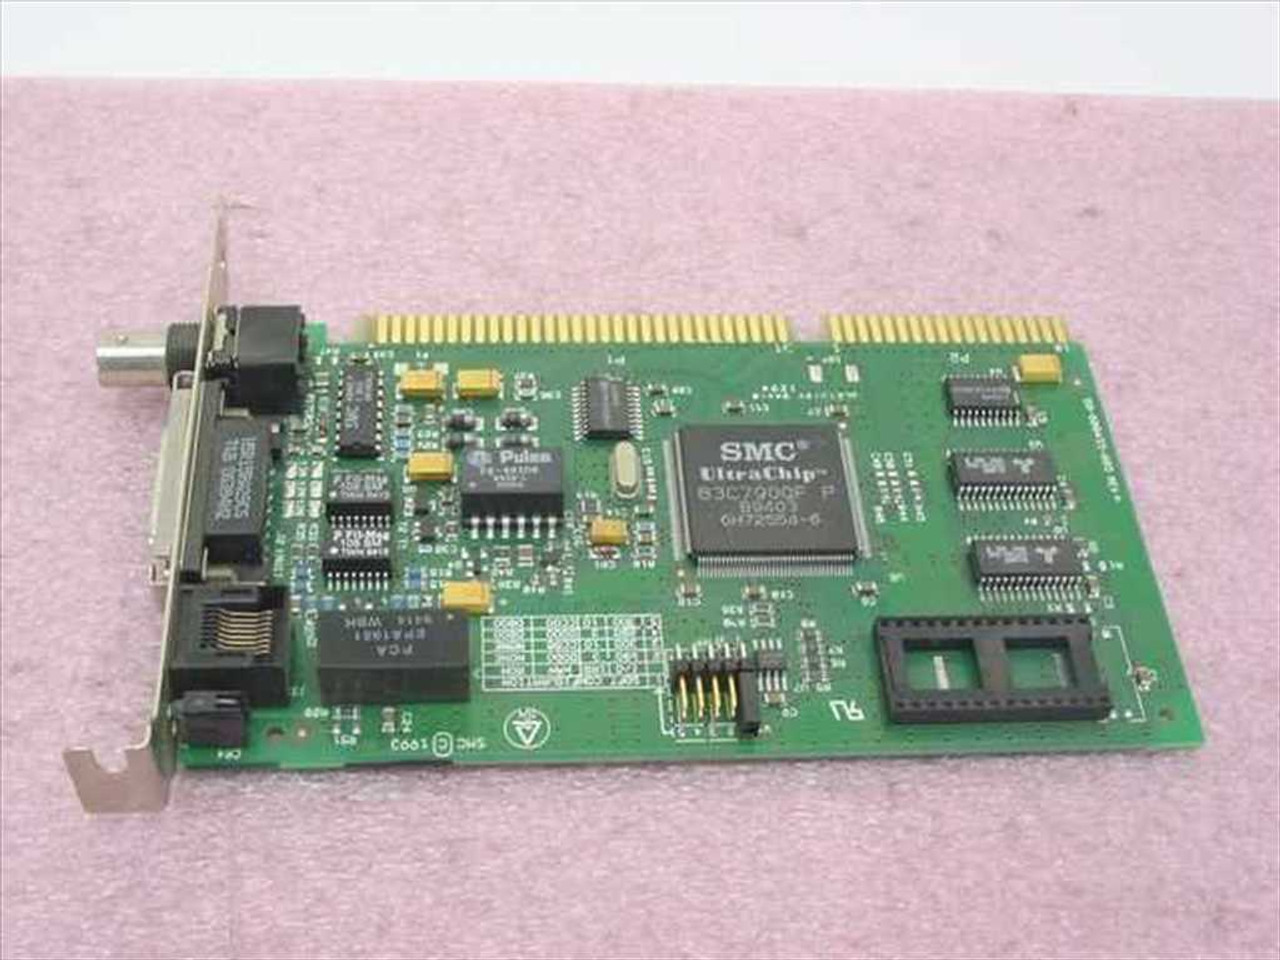 Isa networks inc - Smc 8216c Ethernet Isa Rj45 Aui Bnc Network Card